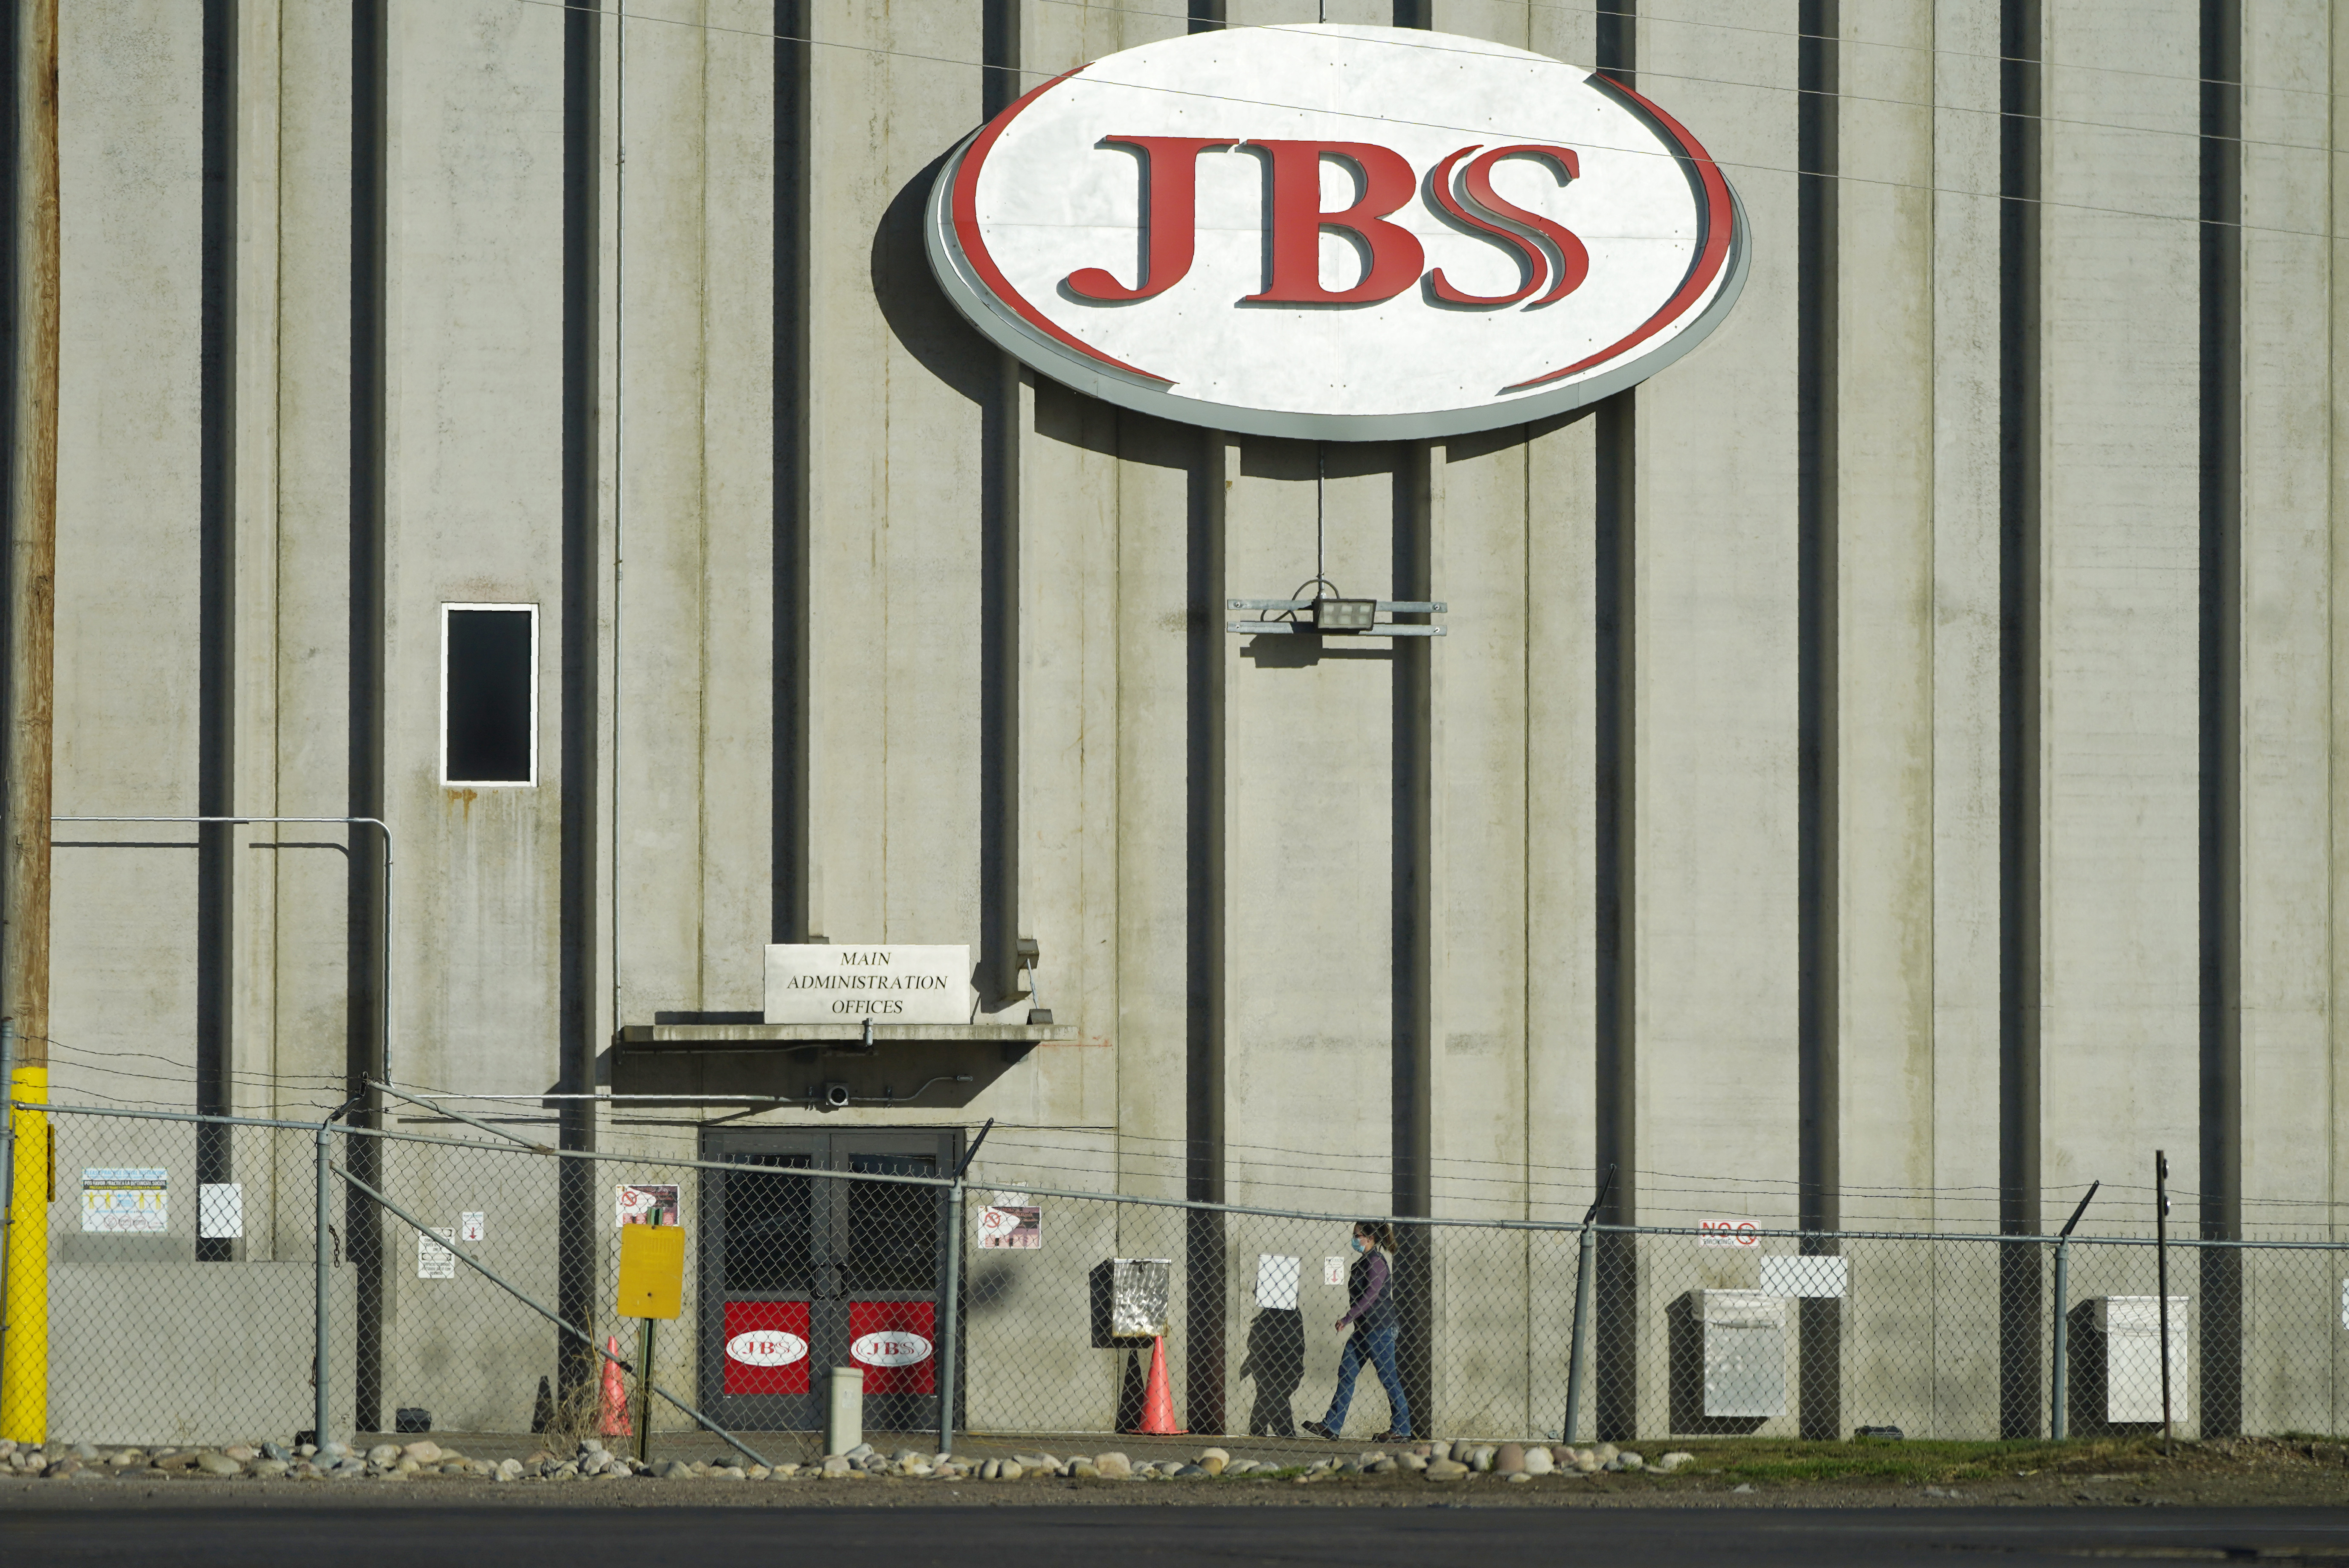 In this Oct. 12, 2020 file photo, a worker heads into the JBS meatpacking plant in Greeley, Colo. A weekend ransomware attack on the world's largest meat company is disrupting production around the world just weeks after a similar incident shut down a U.S. oil pipeline.